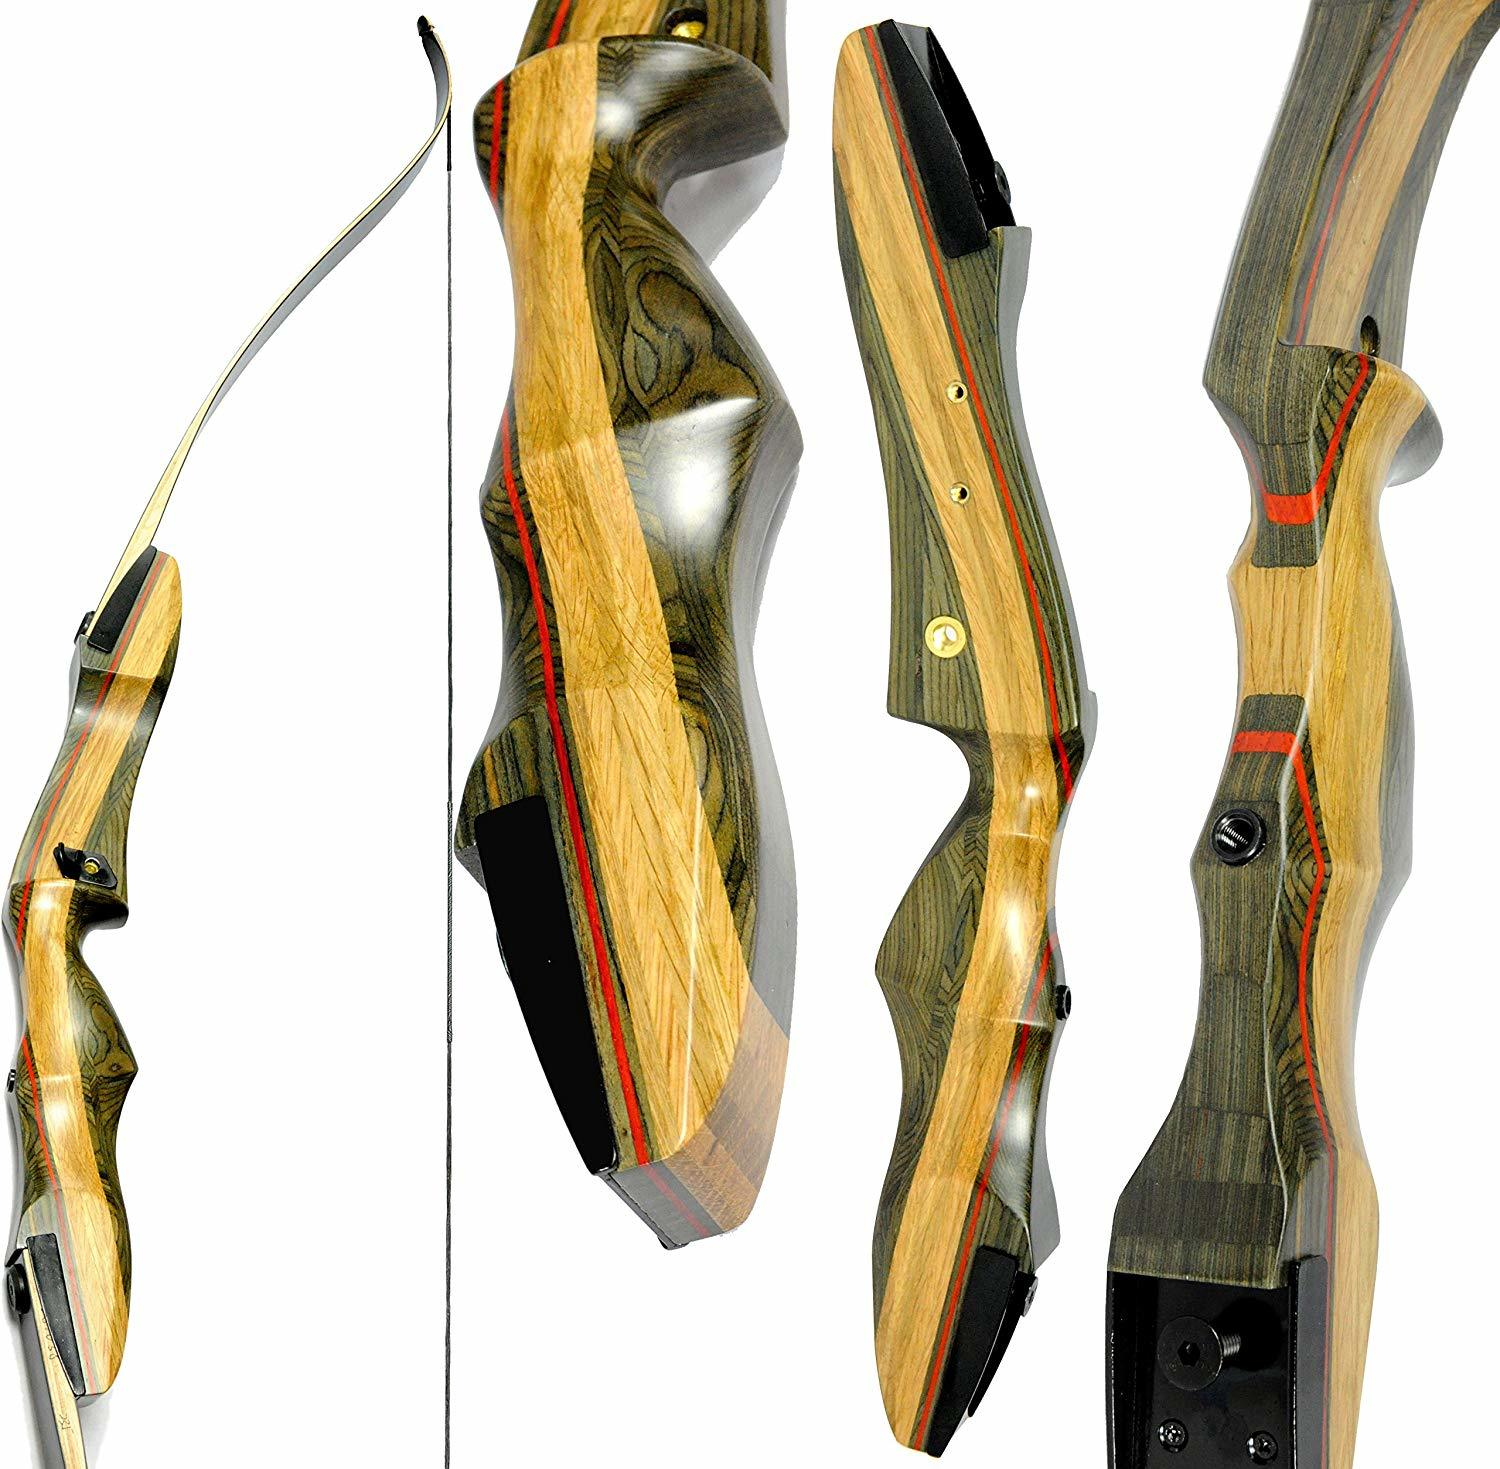 Southwest Archery Takedown Recurve Bow and Archery Set